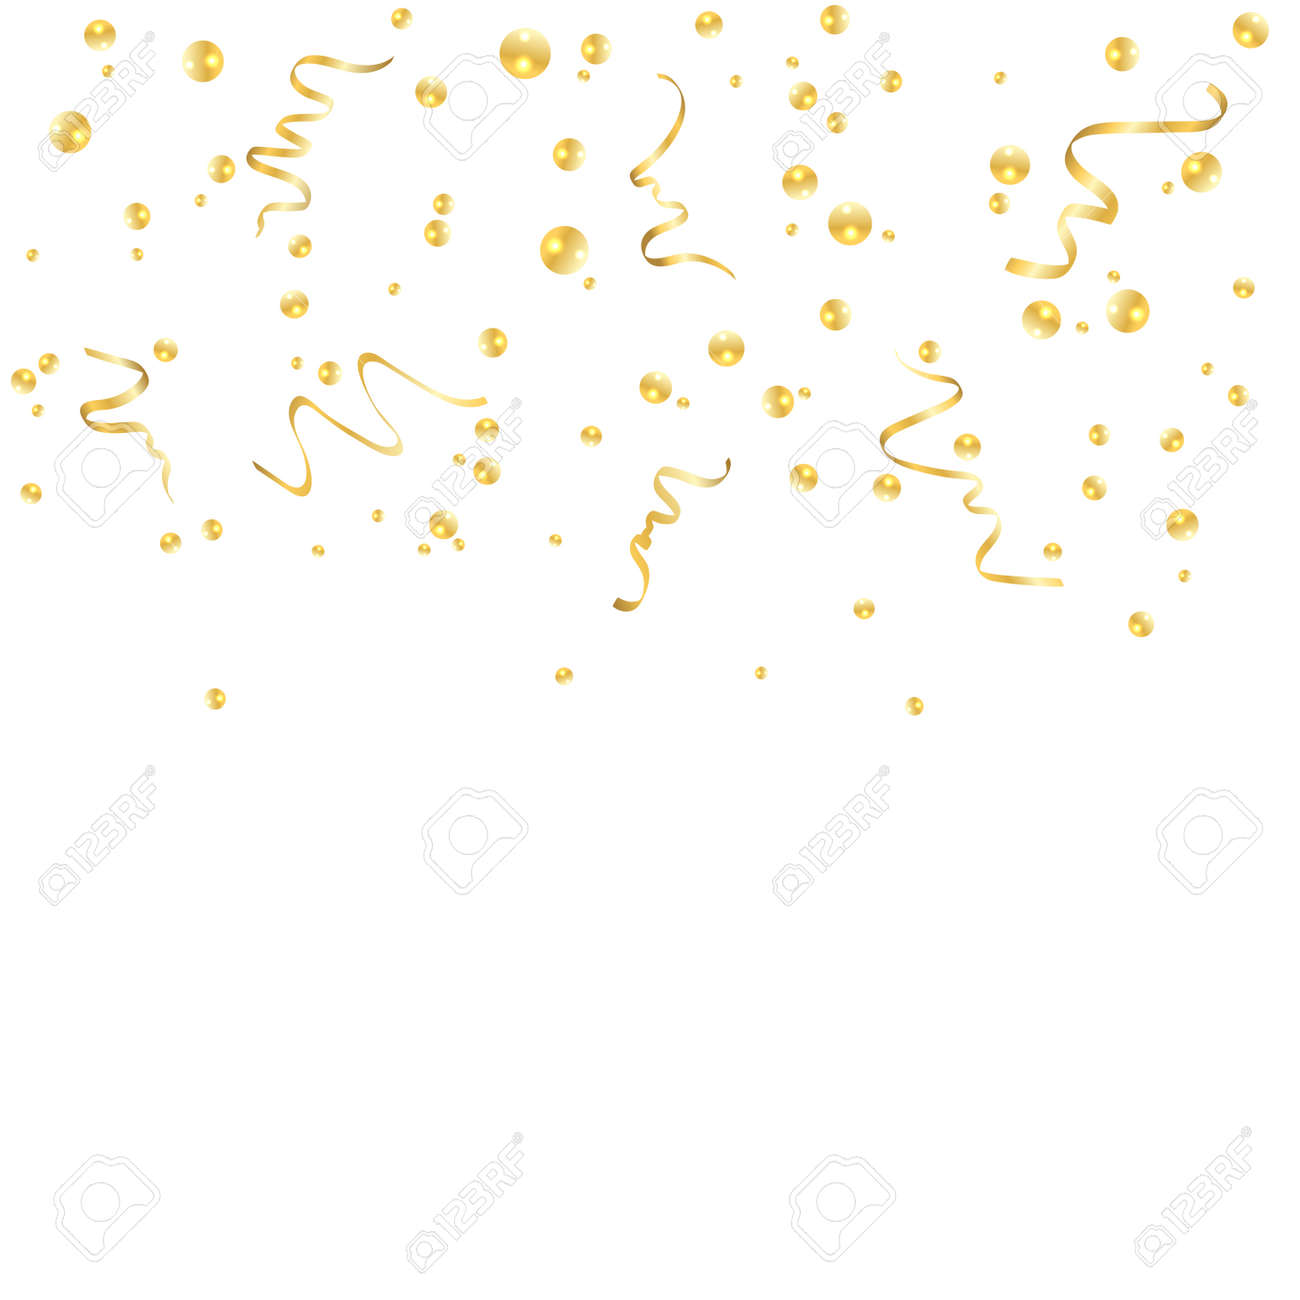 Confetti background vector golden confetti background - Vector Illustration Gold Confetti Celebration Isolated On White Background Falling Golden Abstract Decoration For Party